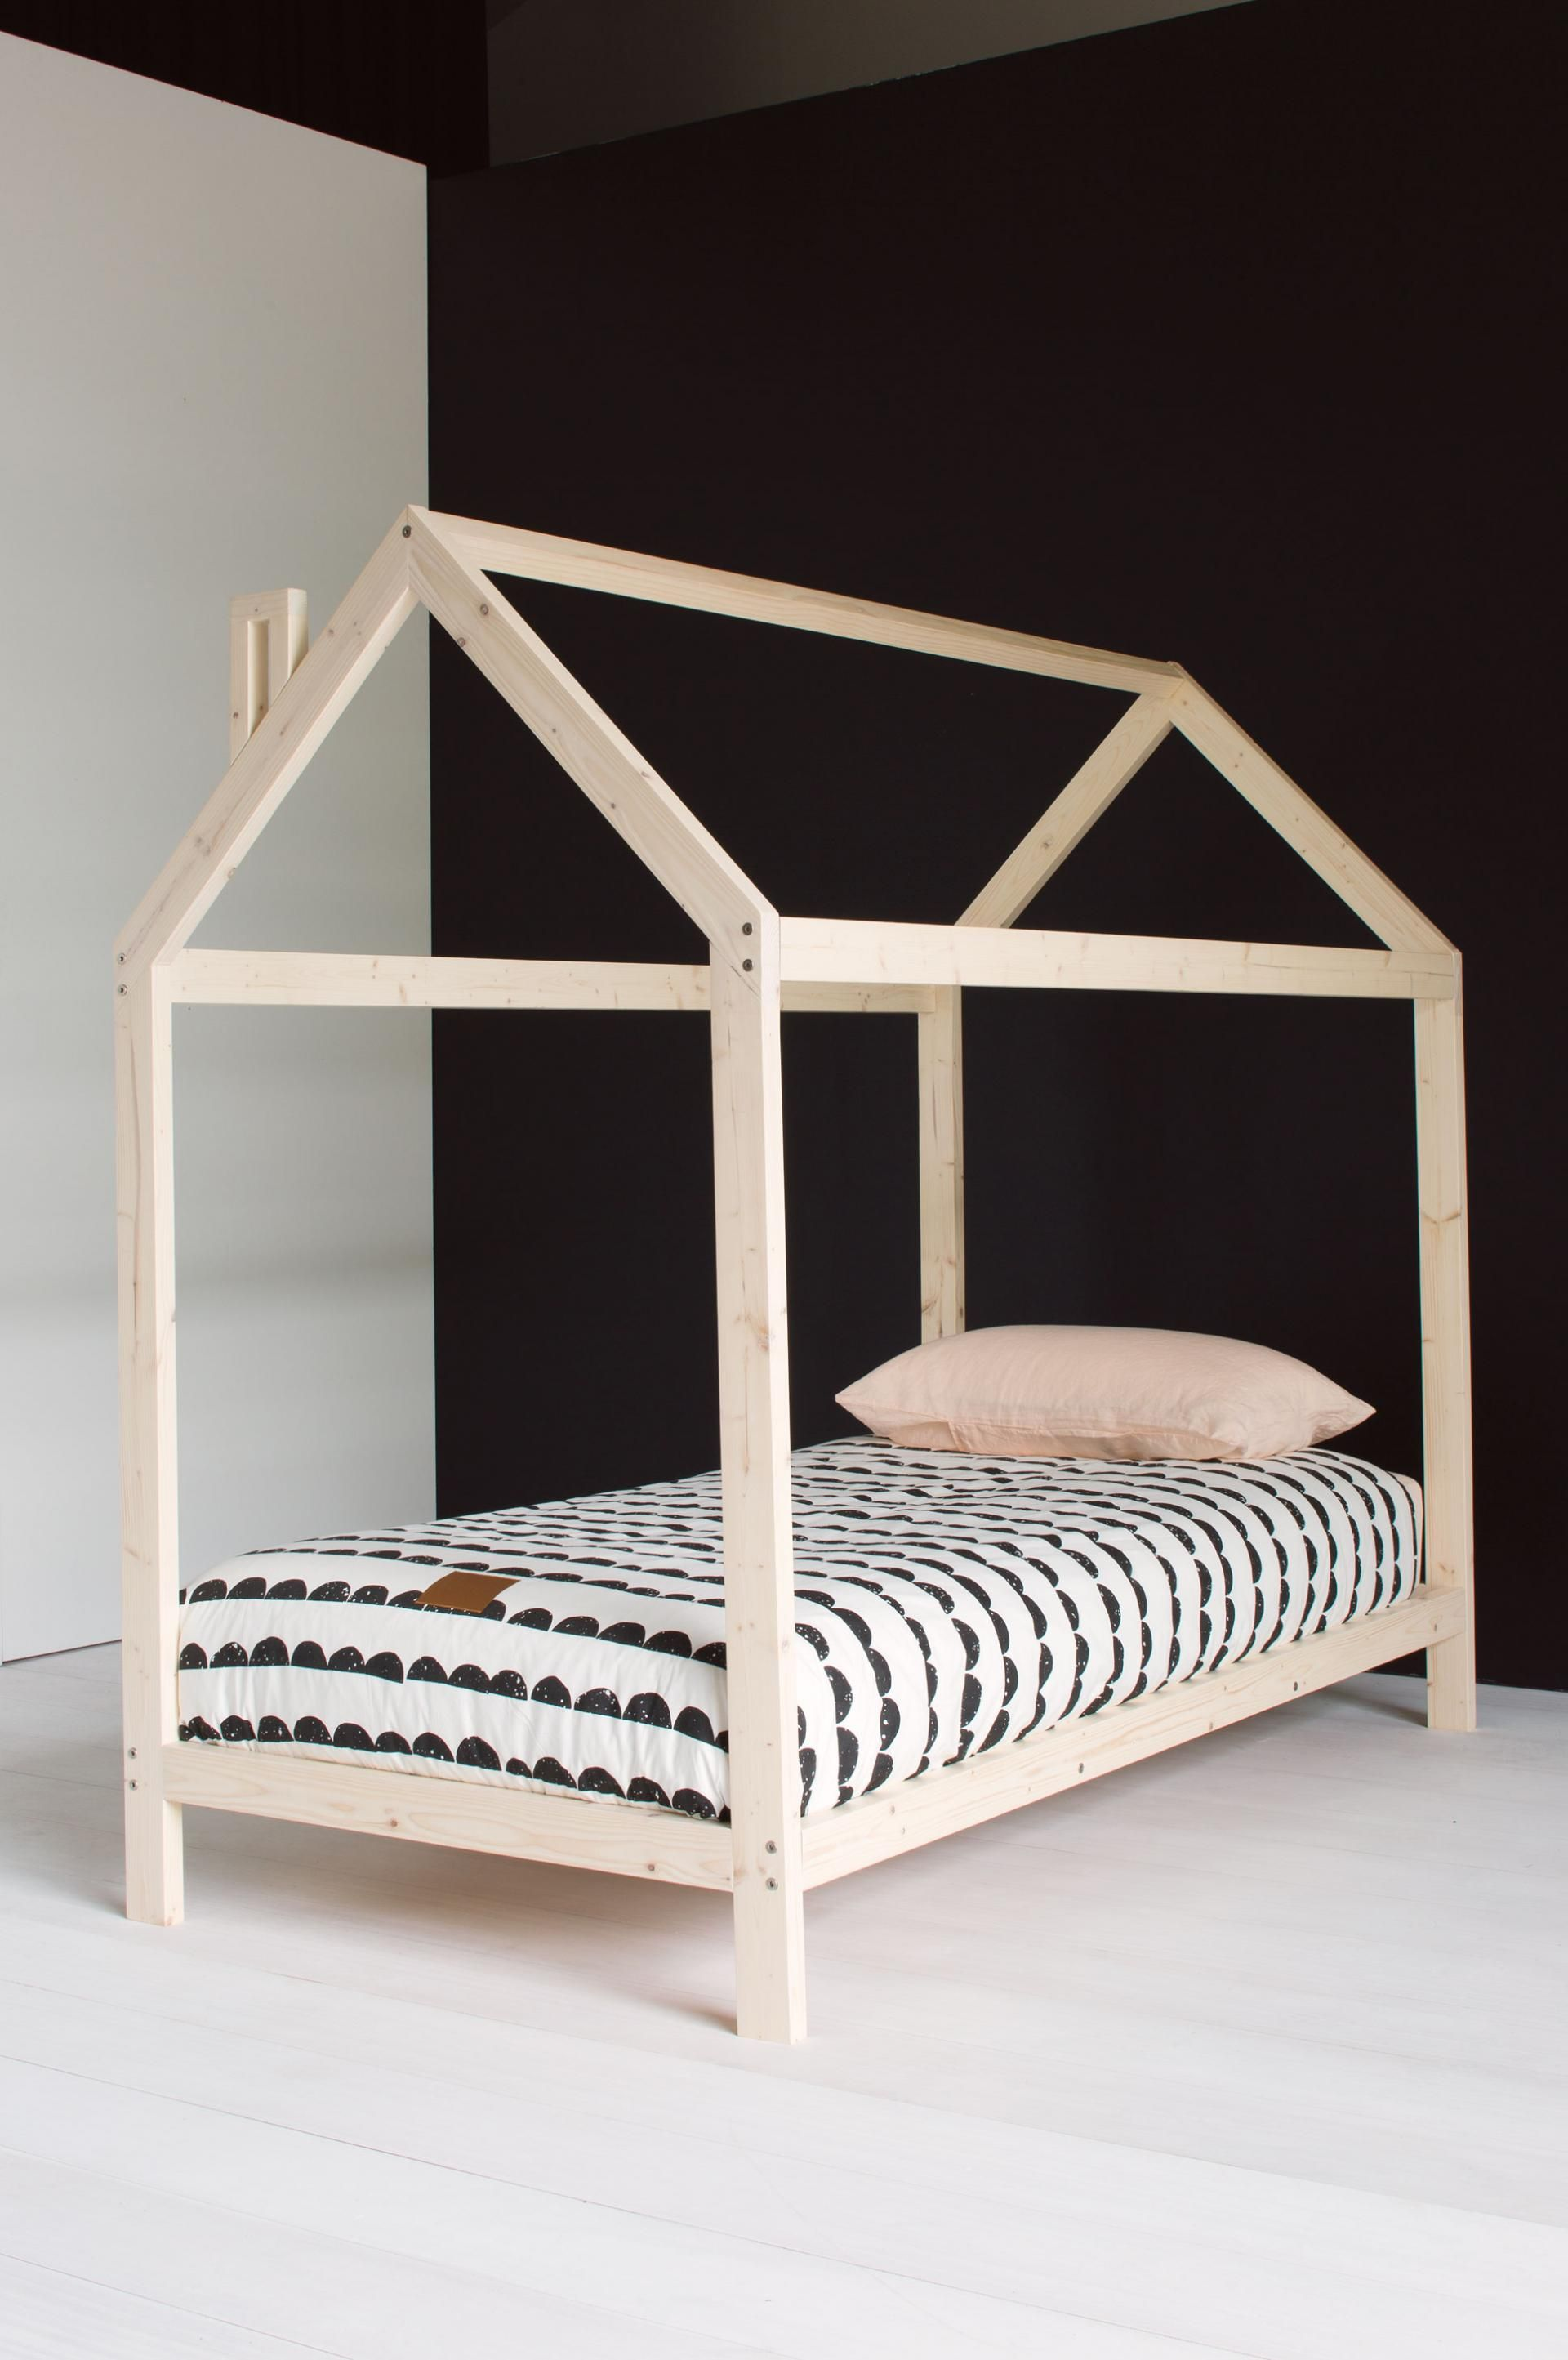 Wooden House Kid Bedframe Scandinavian Chic Children S